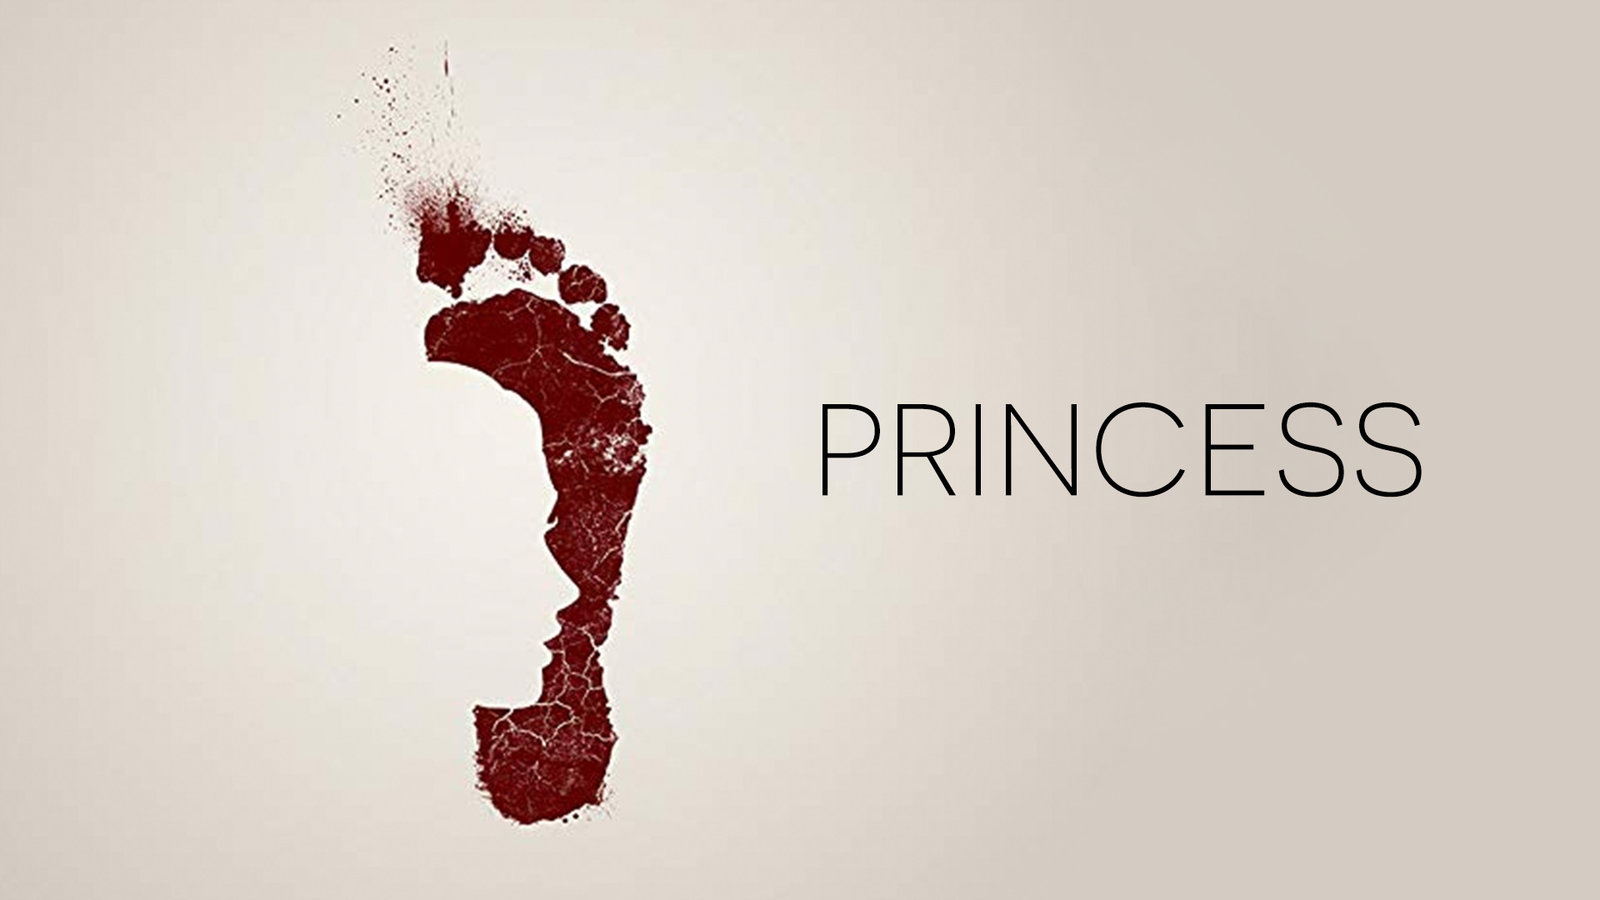 The Princess - A Princesa